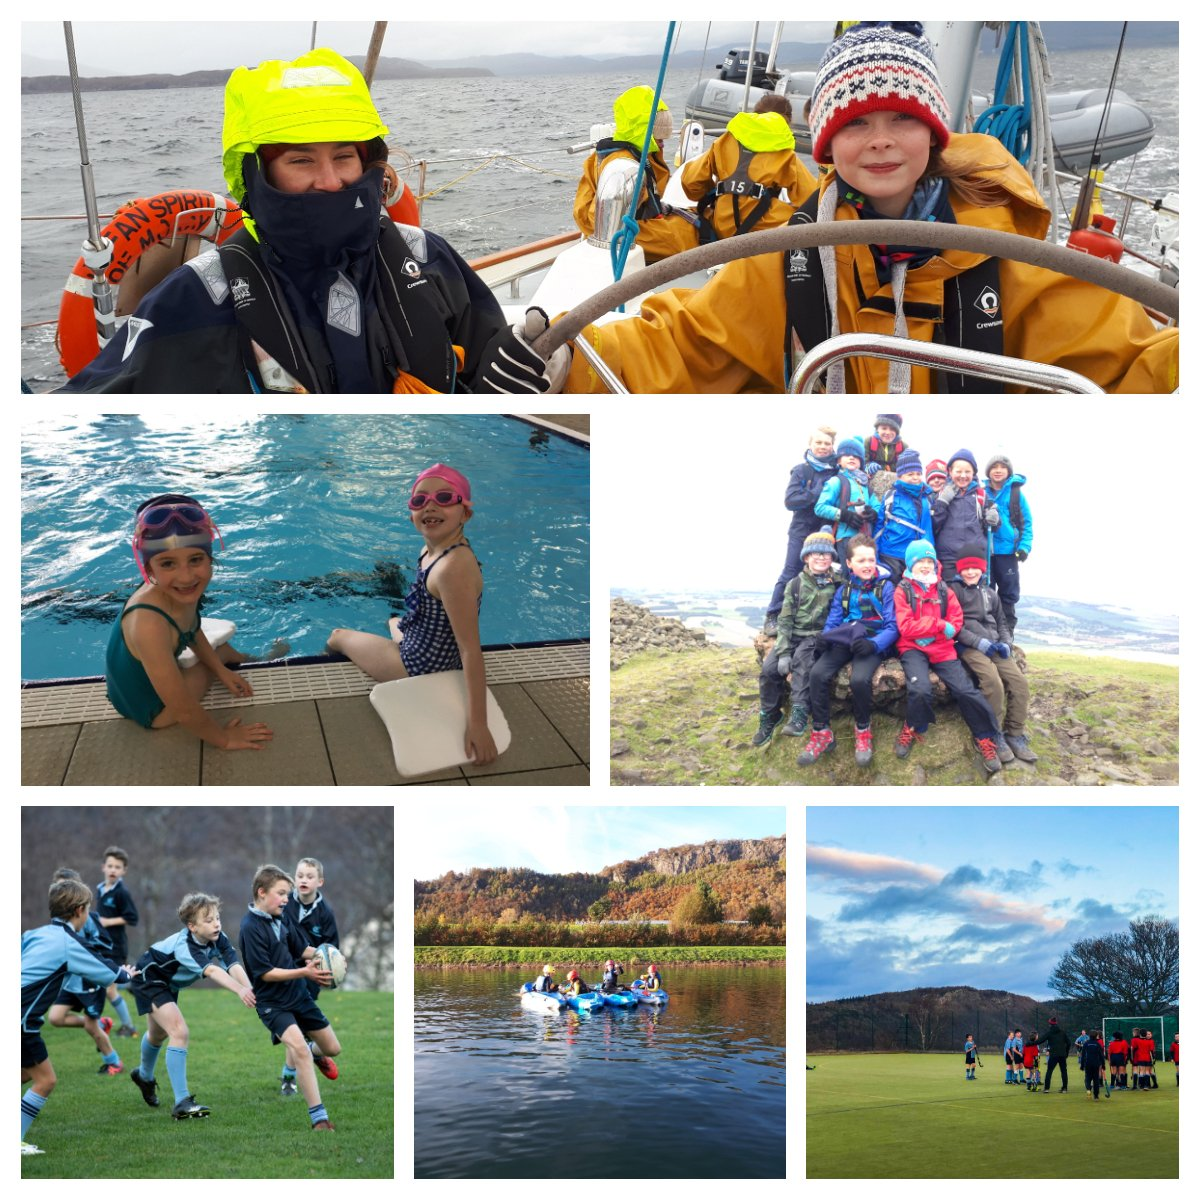 Life is a big #adventure and there is a whole world out there to be explored. At Craigclowan we want to give our pupils the #courage and strength of character to explore it. Why not come along on Open Morning and find out more about our adventures? https://bit.ly/2B9IqTs